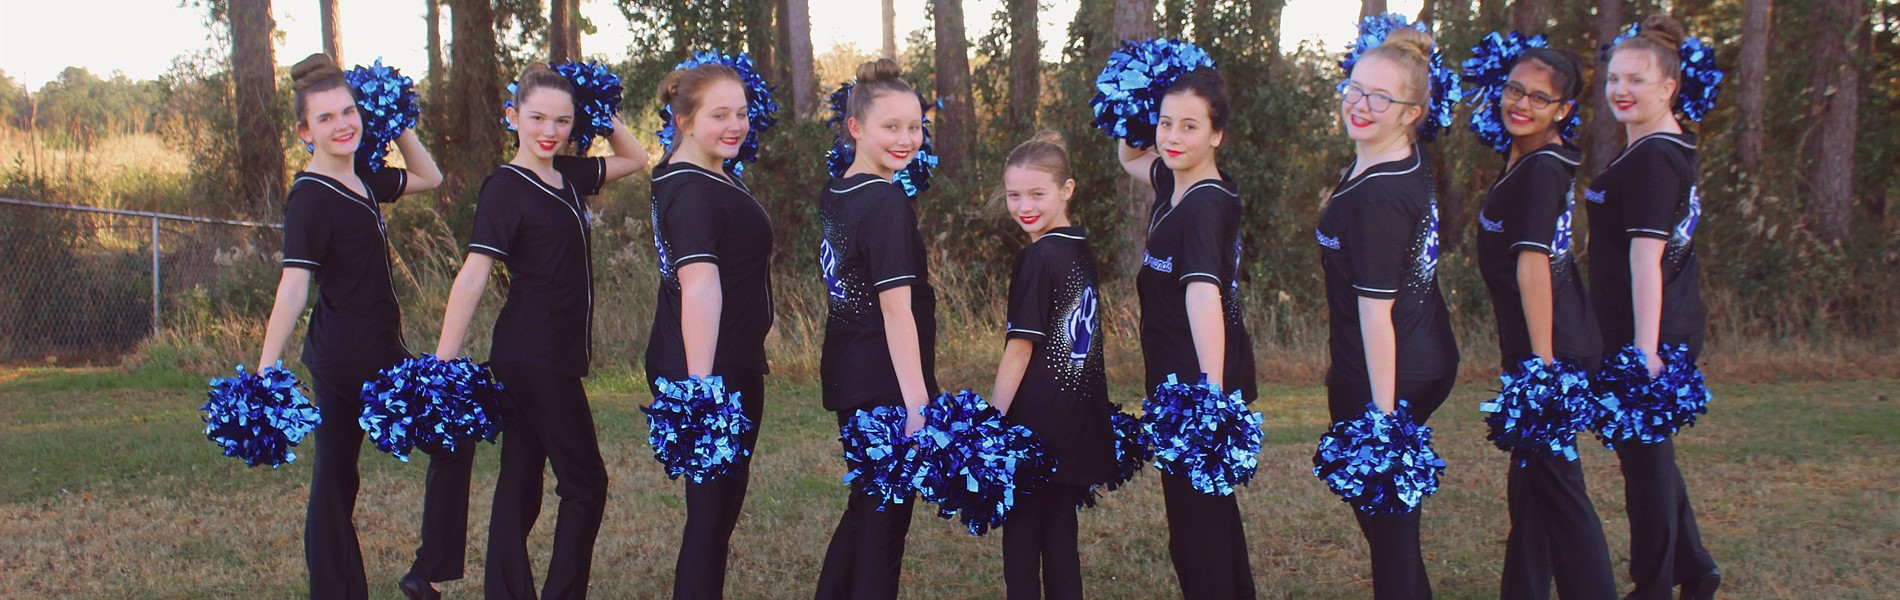 Blue Diamonds Dance Team